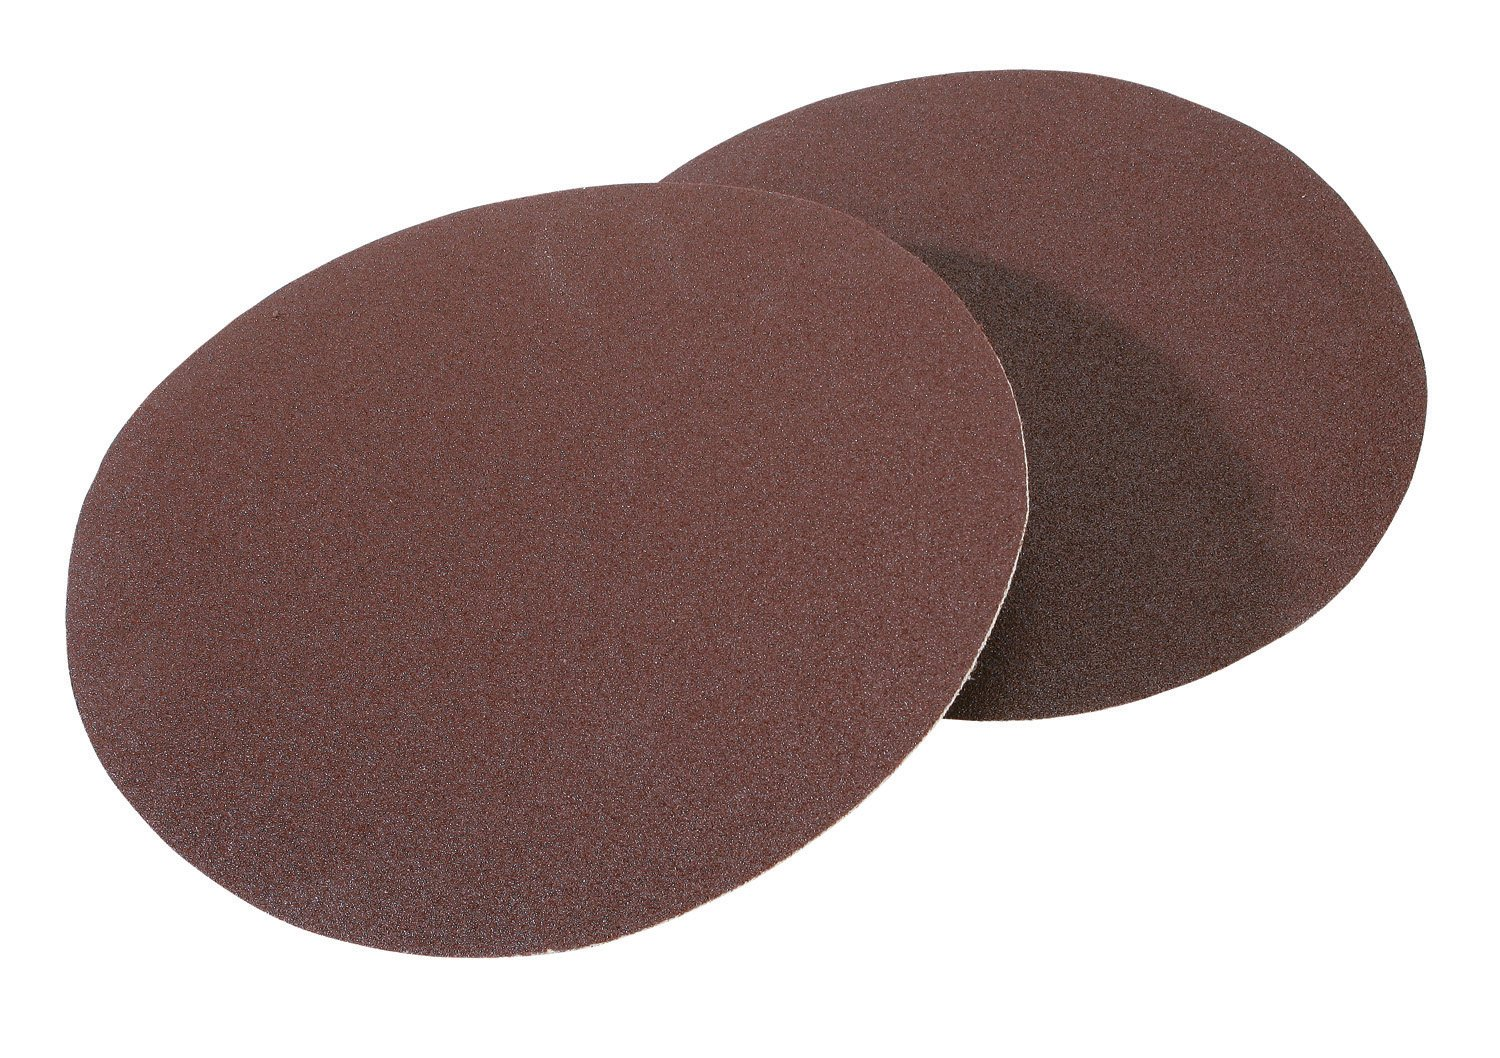 DELTA 31-083 5-Inch 120 Grit Self-Adhesive Sanding Disc (2-pack)